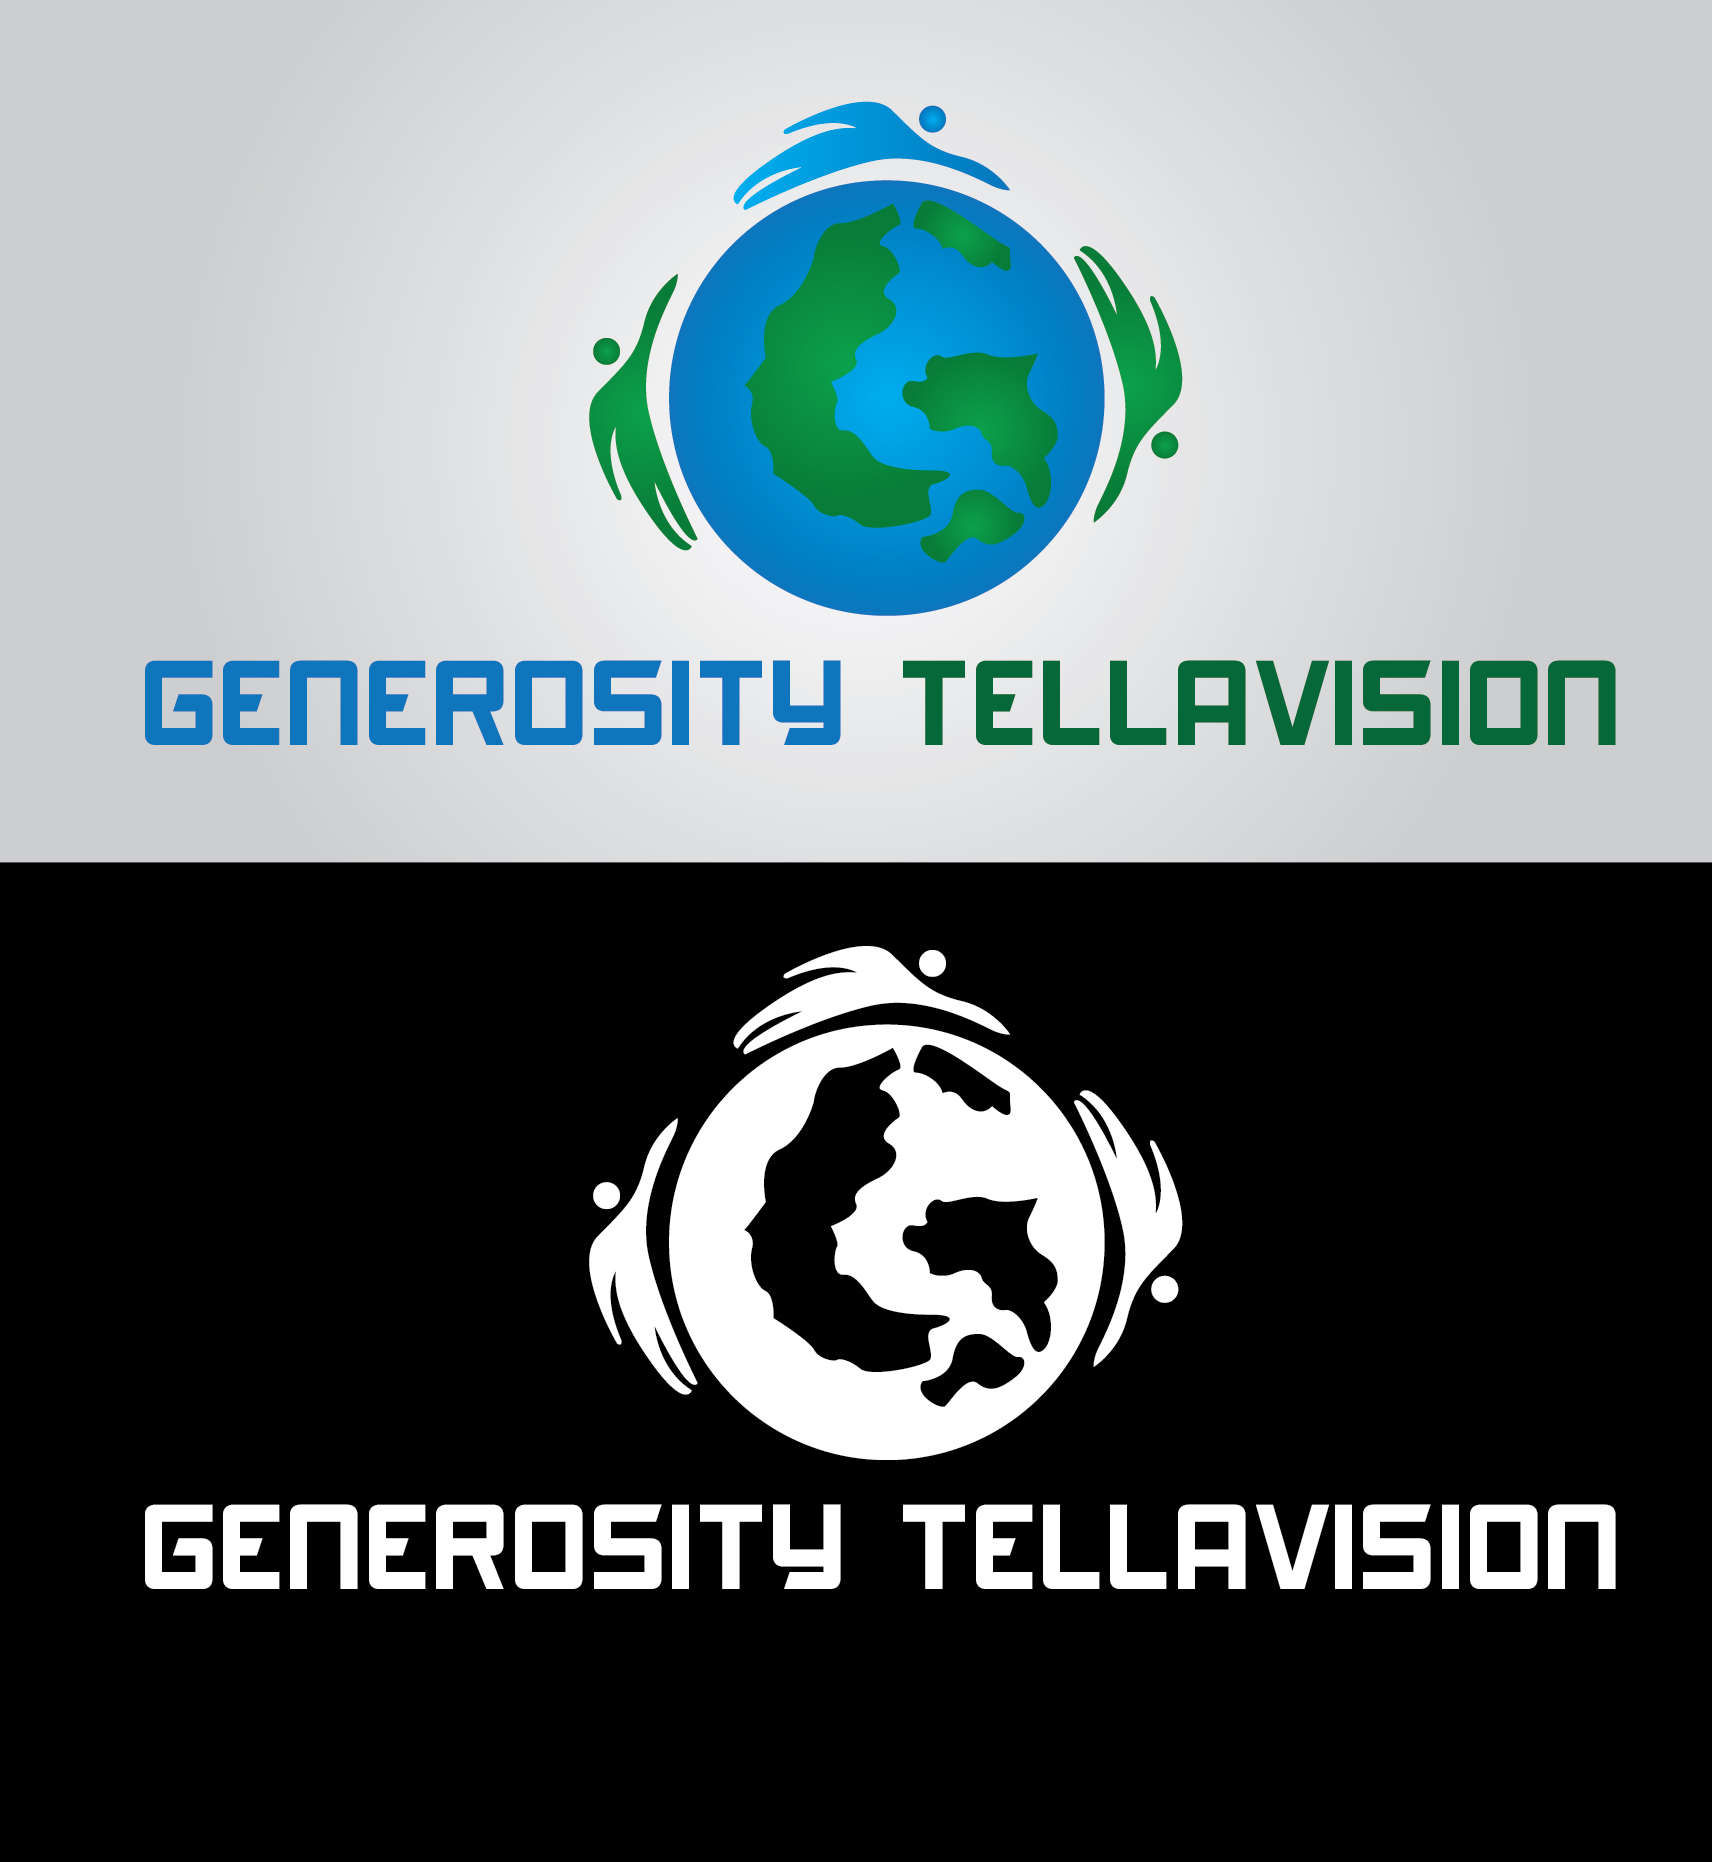 Logo Design by mediaproductionart - Entry No. 59 in the Logo Design Contest Artistic Logo Design for Generosity TellAVision.